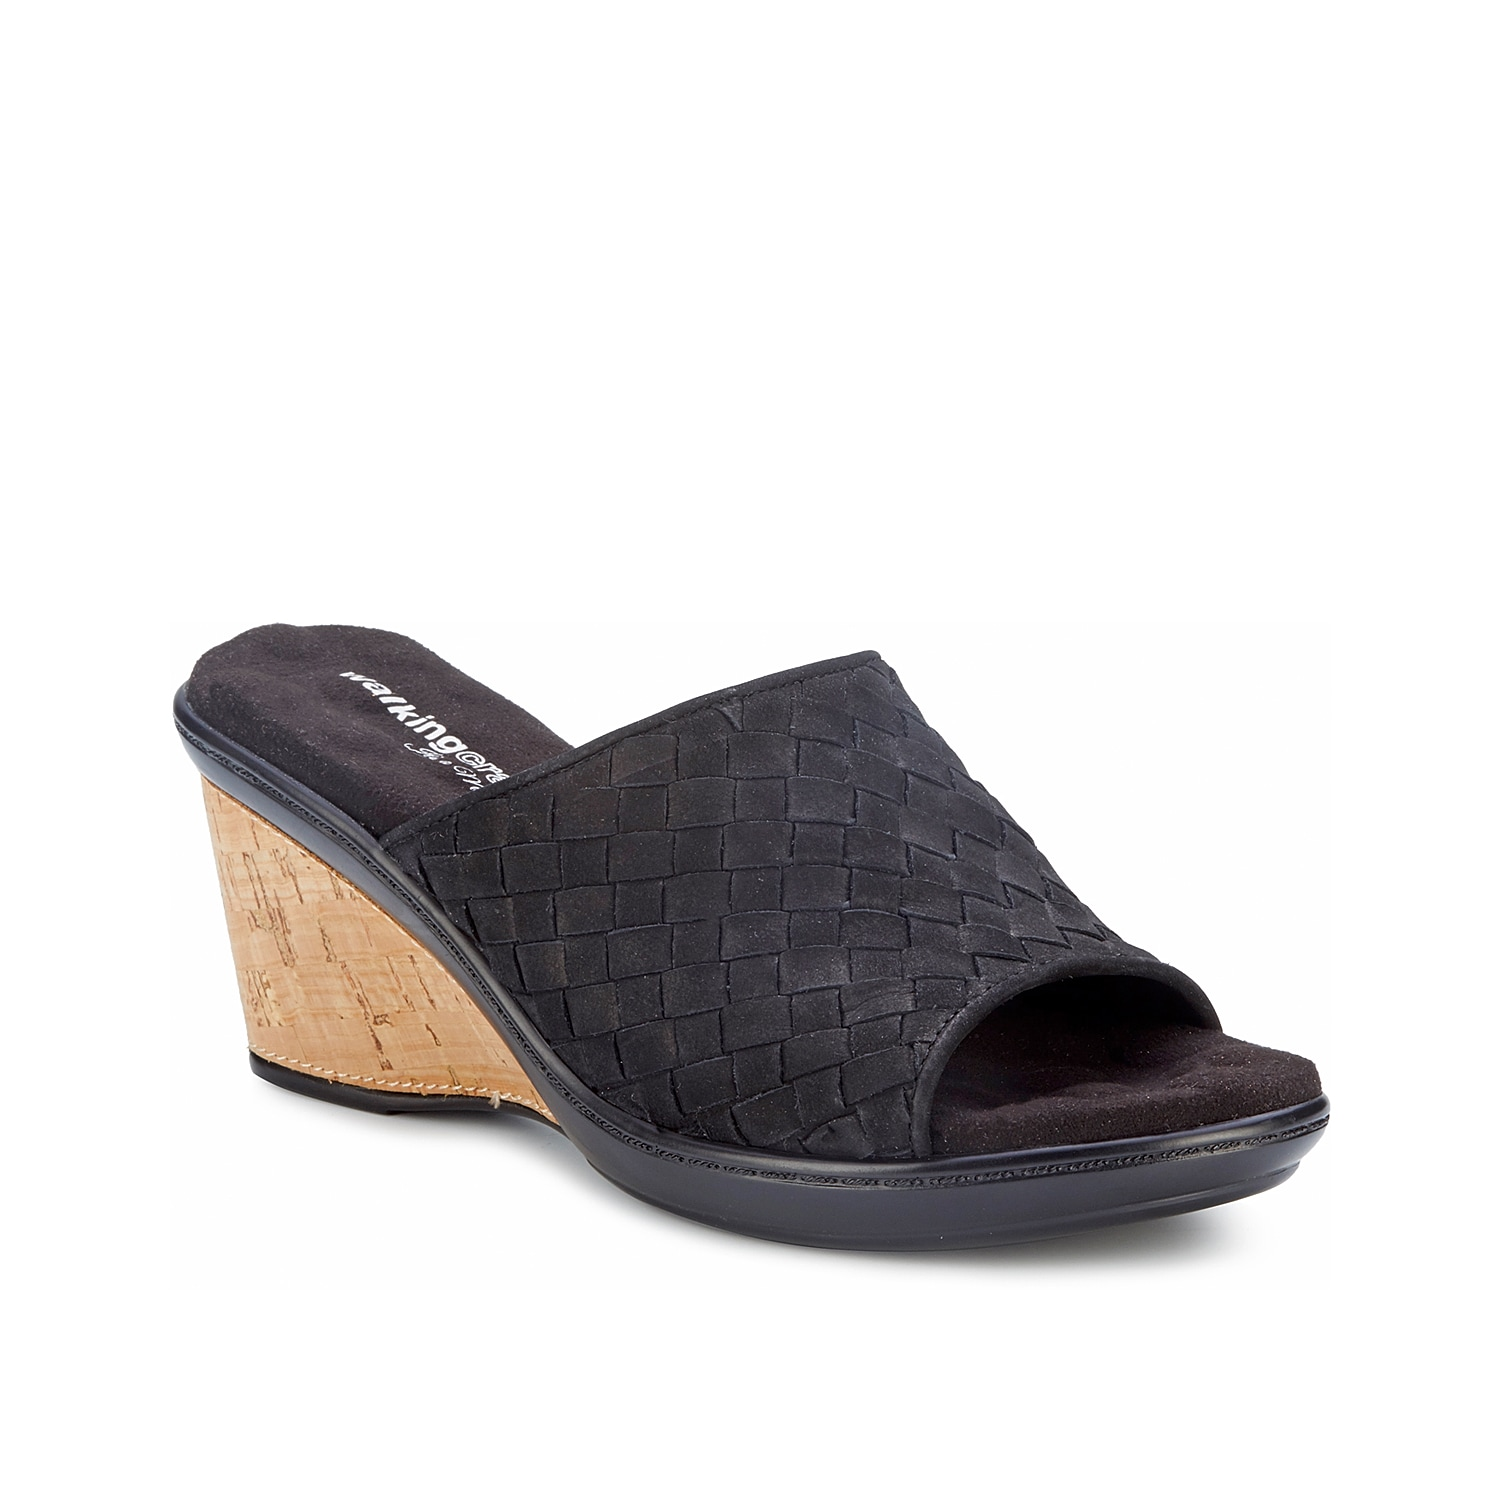 Slide into the Lana wedge sandal from Walking Cradles for stylish comfort. A Tiny Pillows footbed cushions every step while the woven leather upper and cork wedge keep this pair on trend.